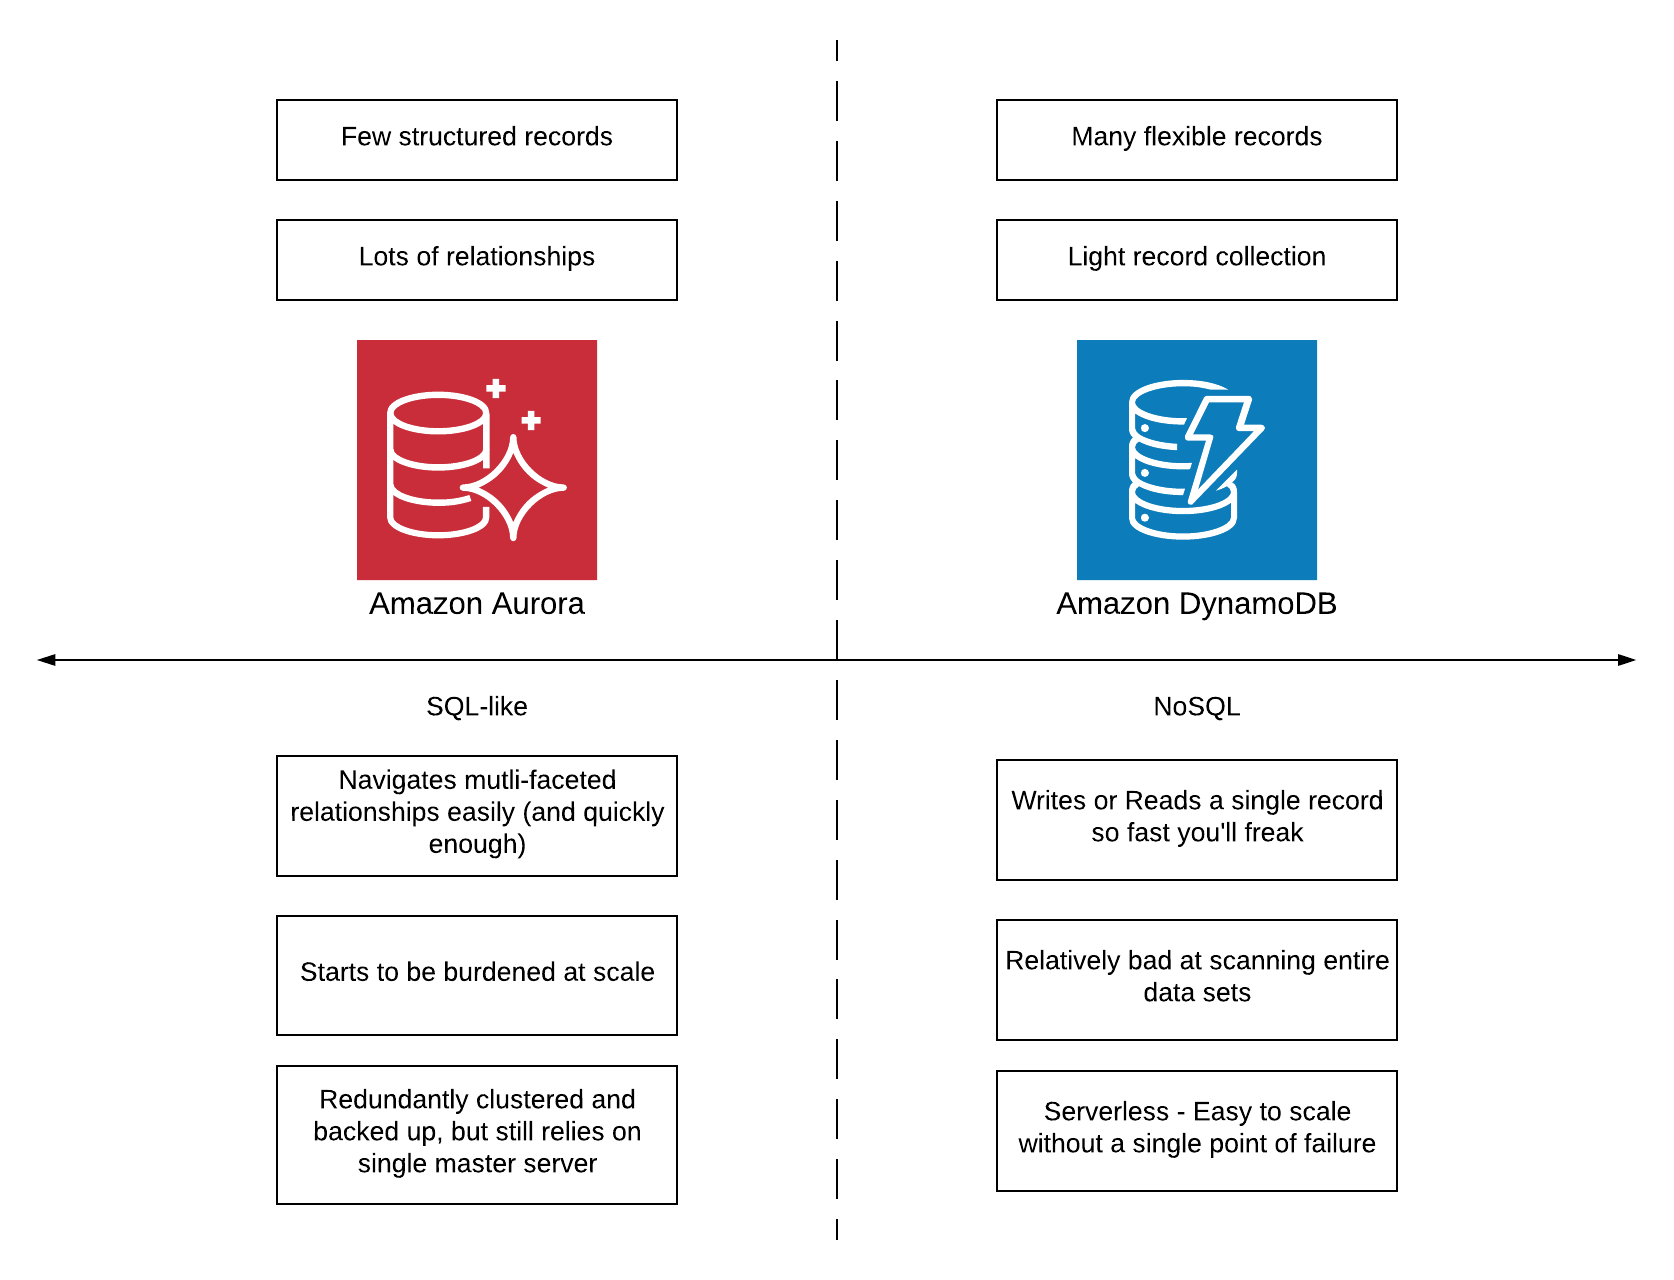 SQL-like vs. NoSQL